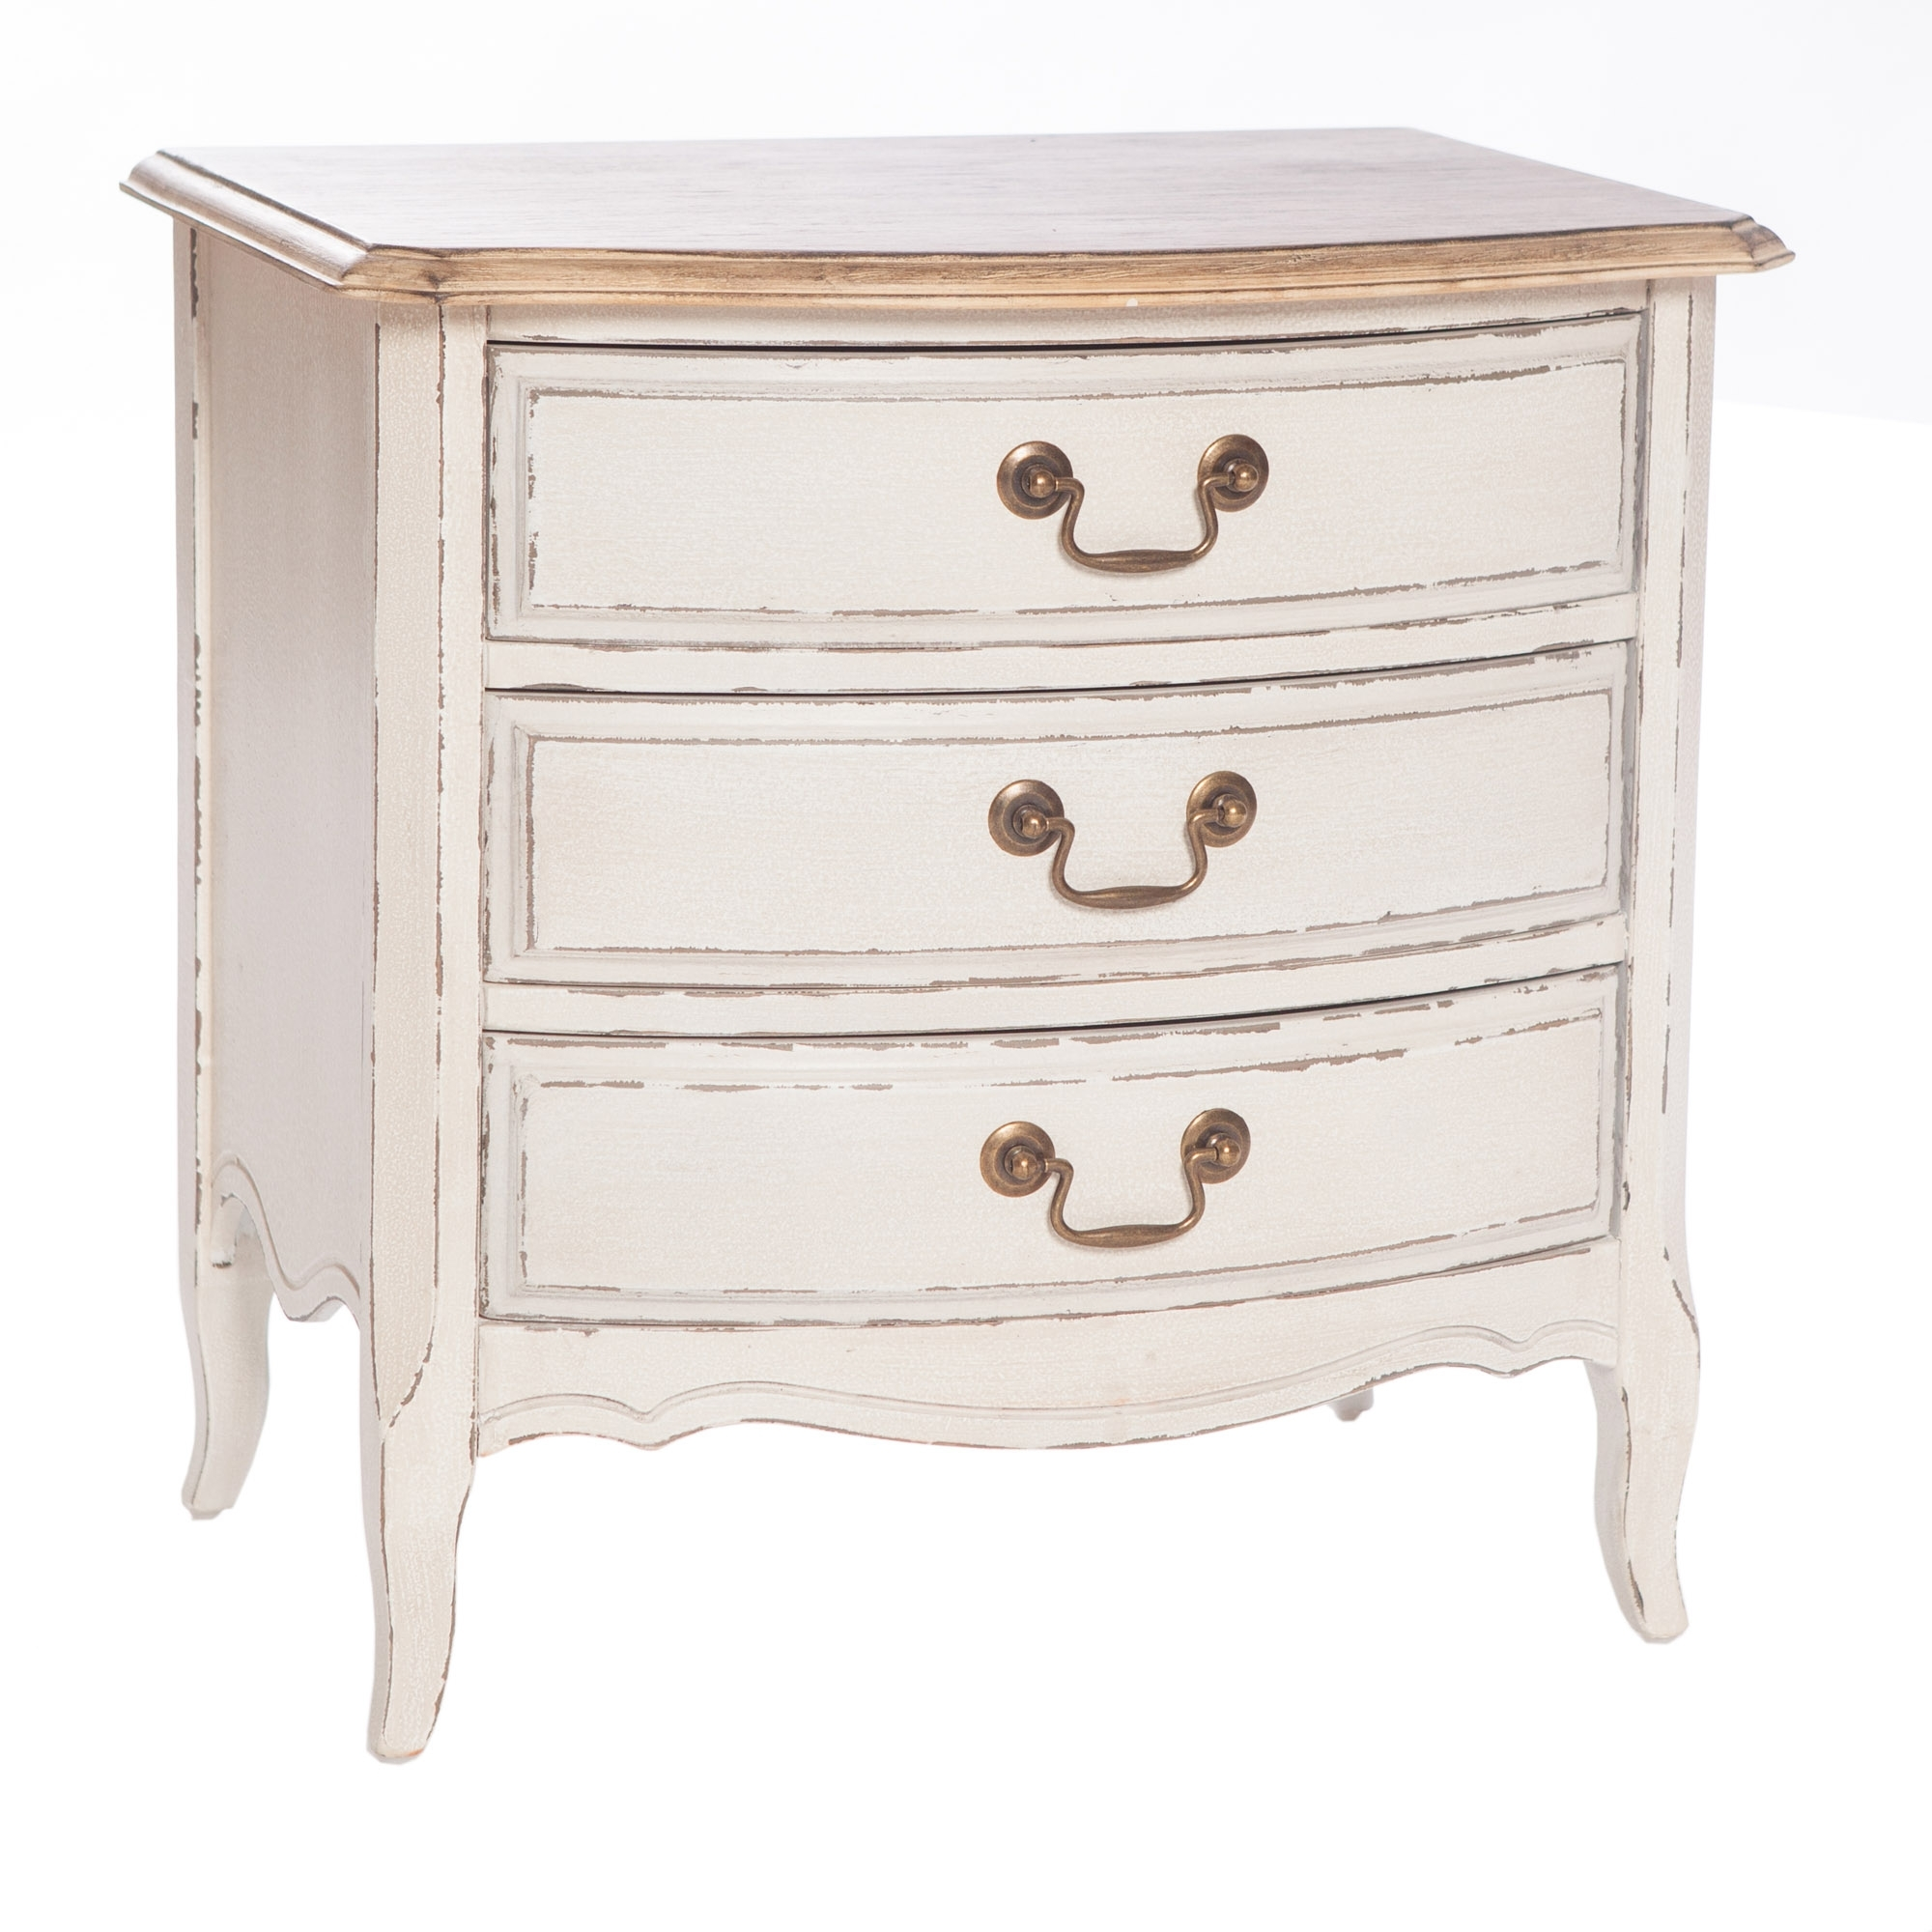 poitiers white shabby chic 3 drawer bedside table bedroom hd365 rh homesdirect365 co uk